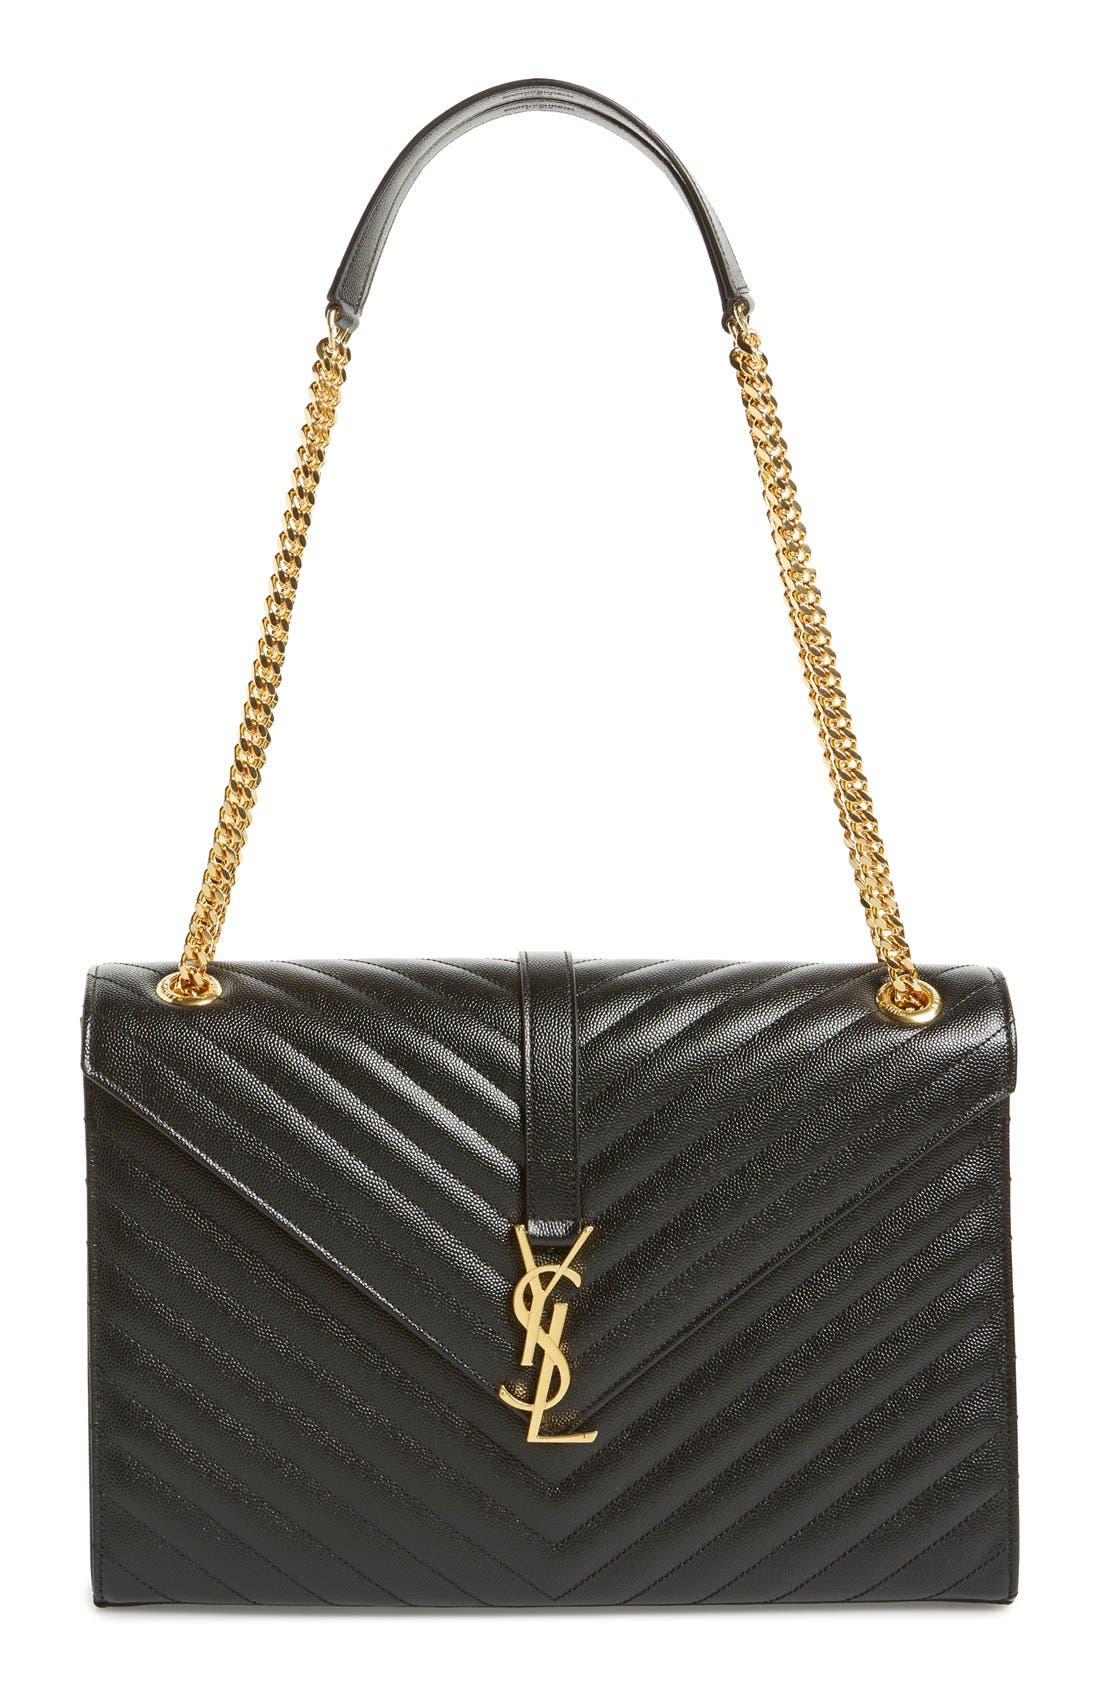 Main Image - Saint Laurent 'Large Monogram' Grained Leather Shoulder Bag